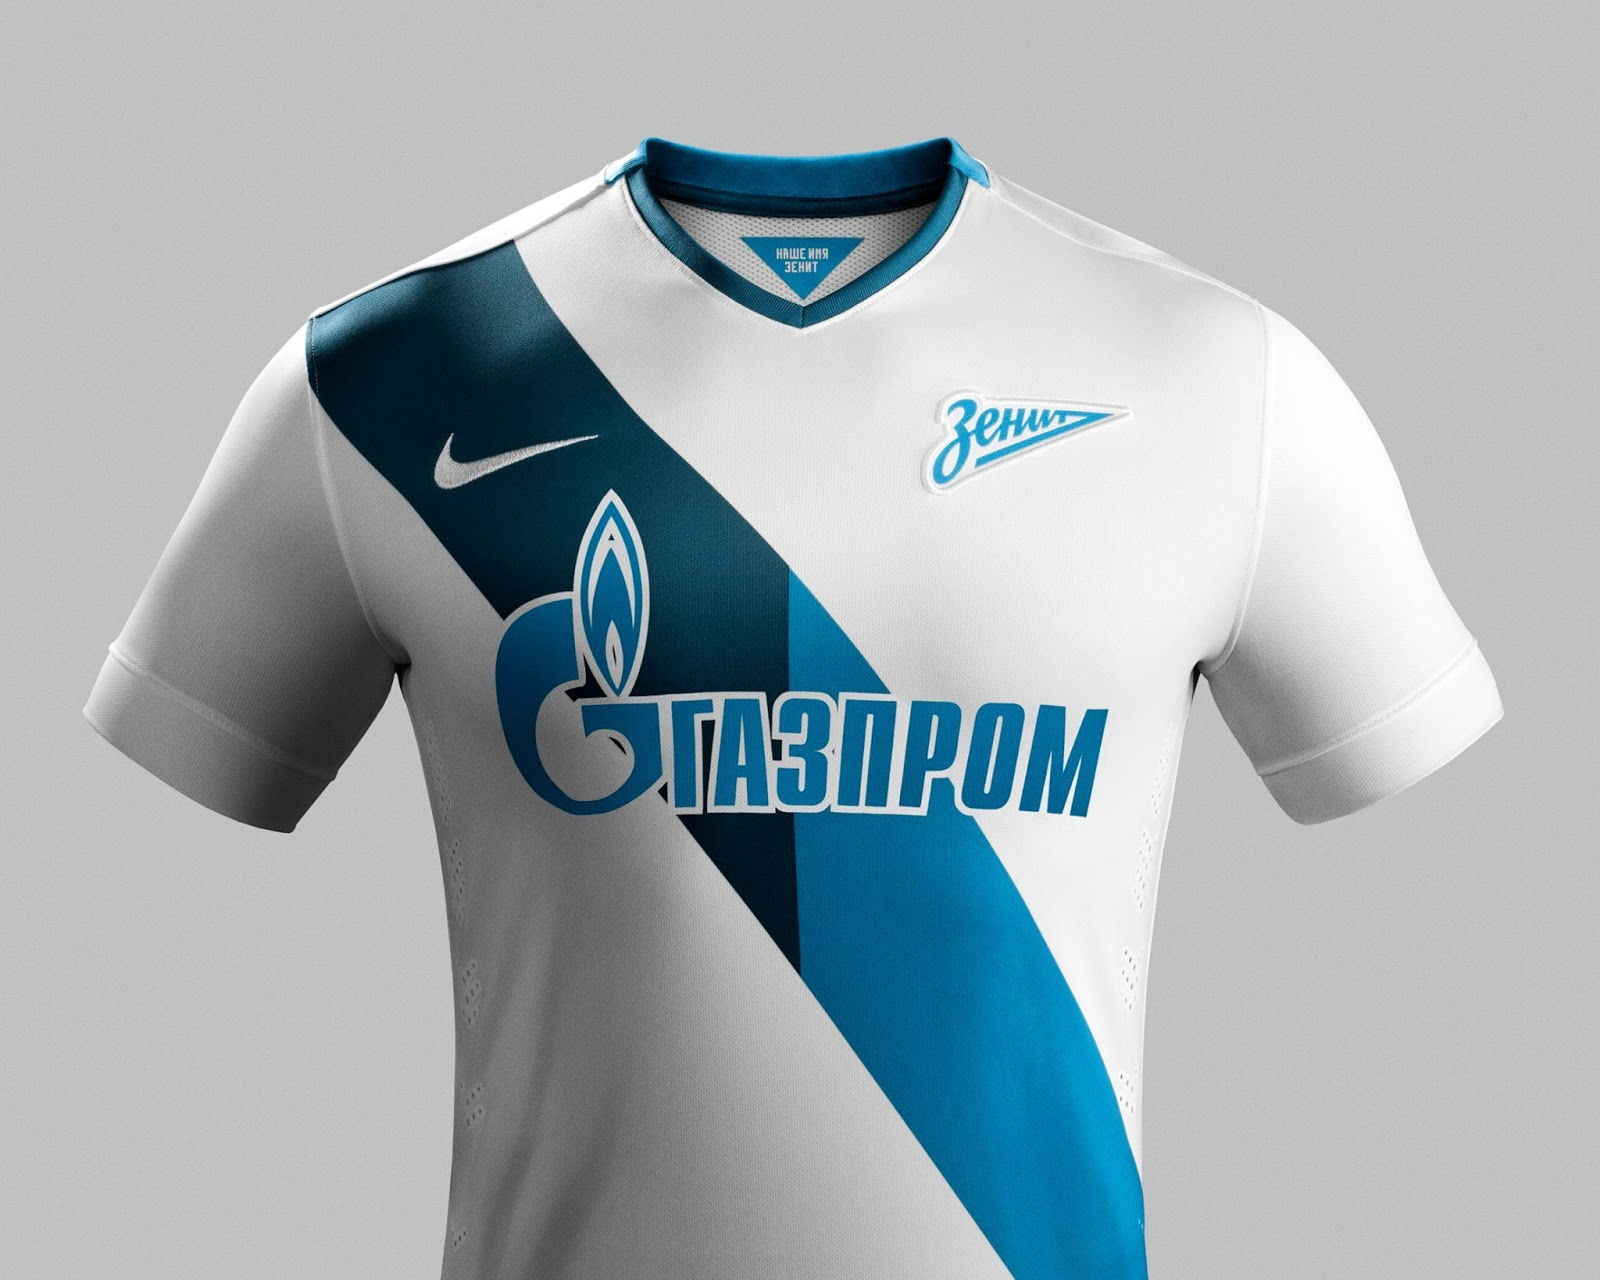 Zenit: New Nike Zenit 14-15 Kits Released